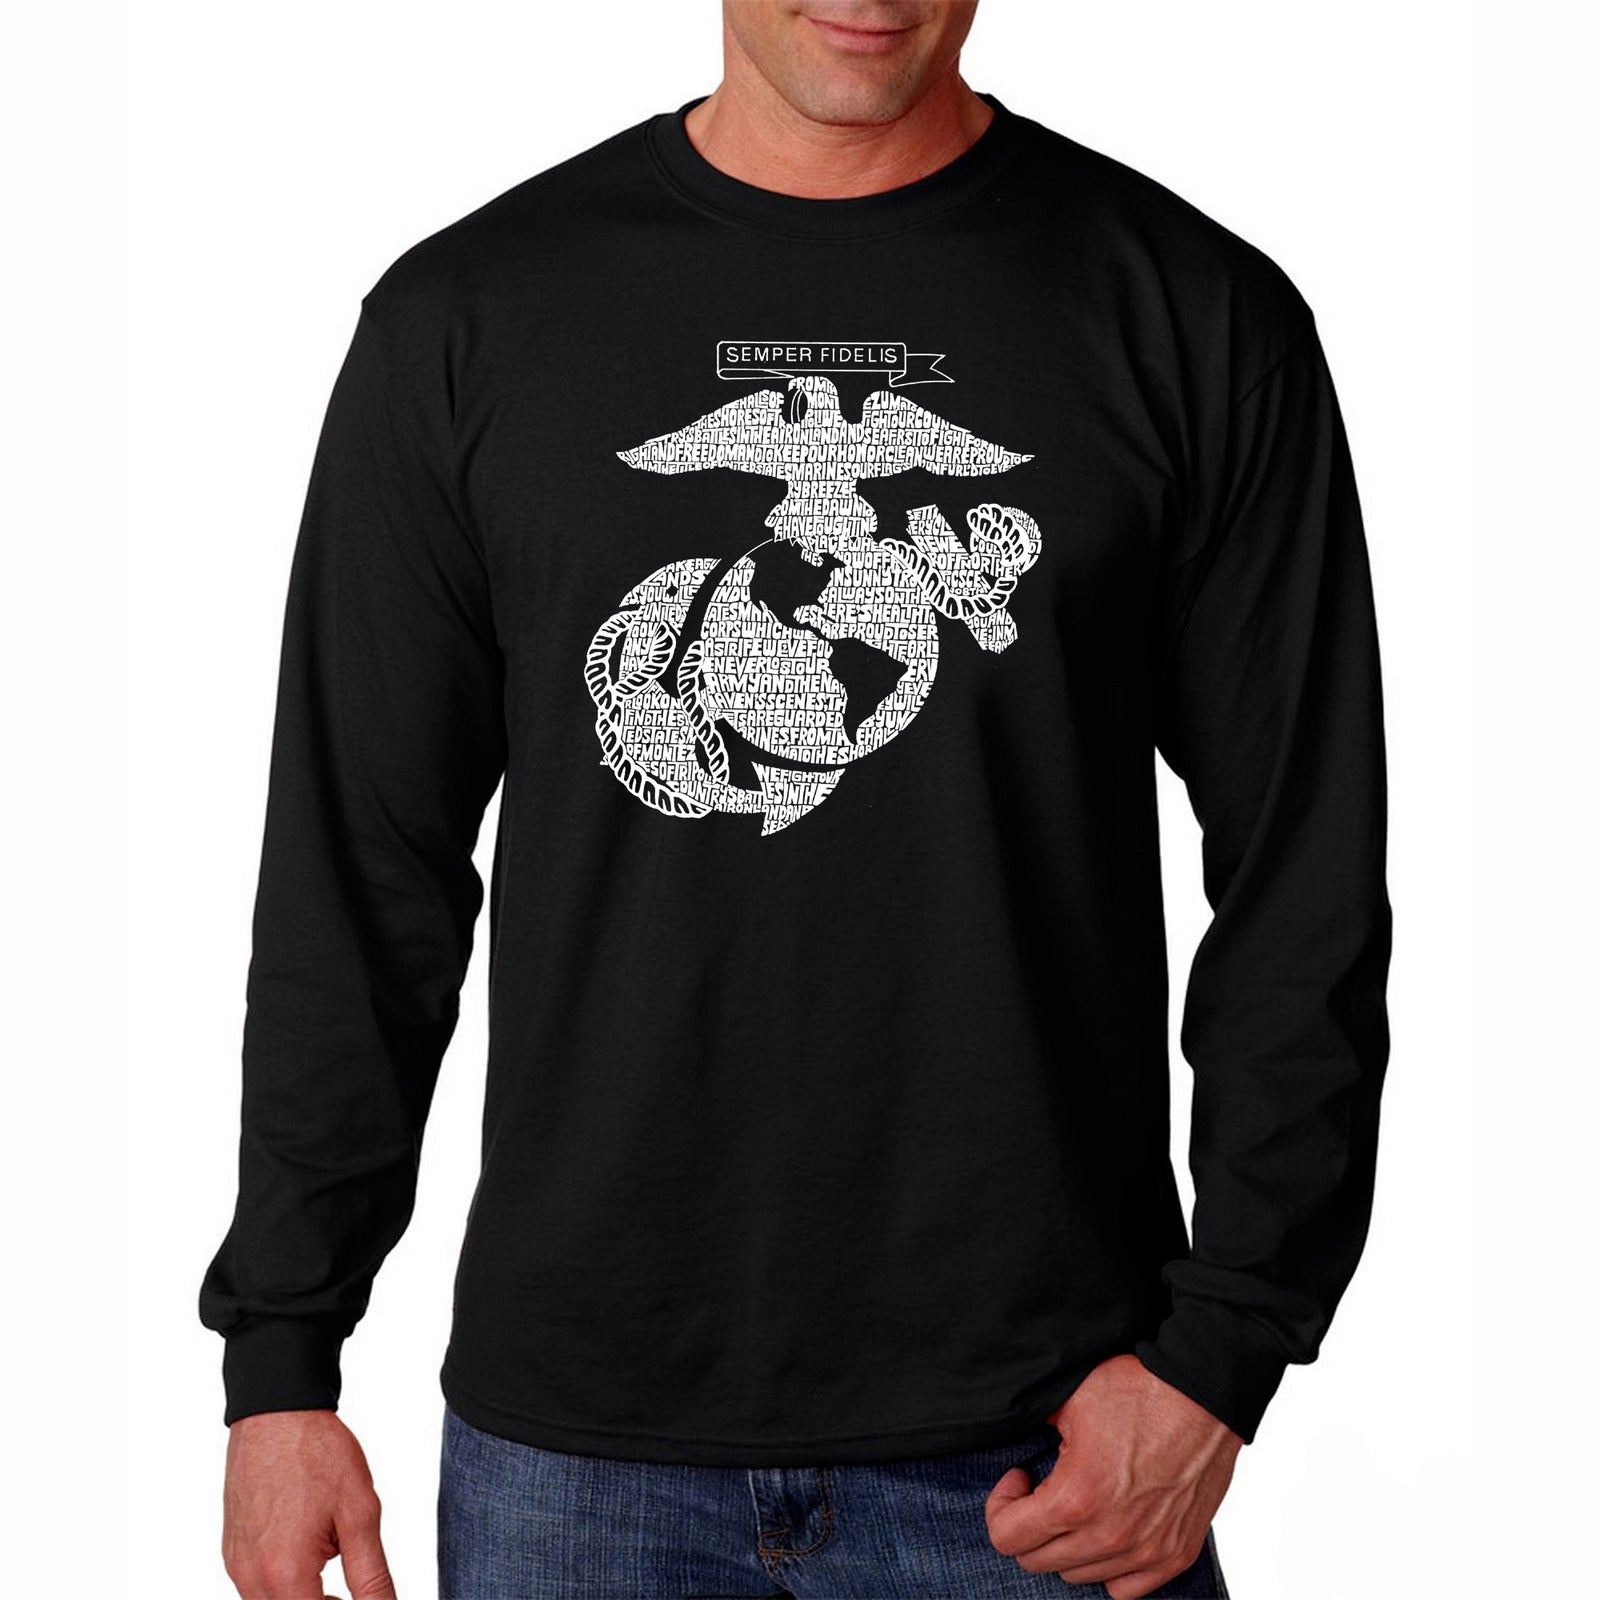 Men's Long Sleeve T-shirt - LYRICS TO THE MARINES HYMN